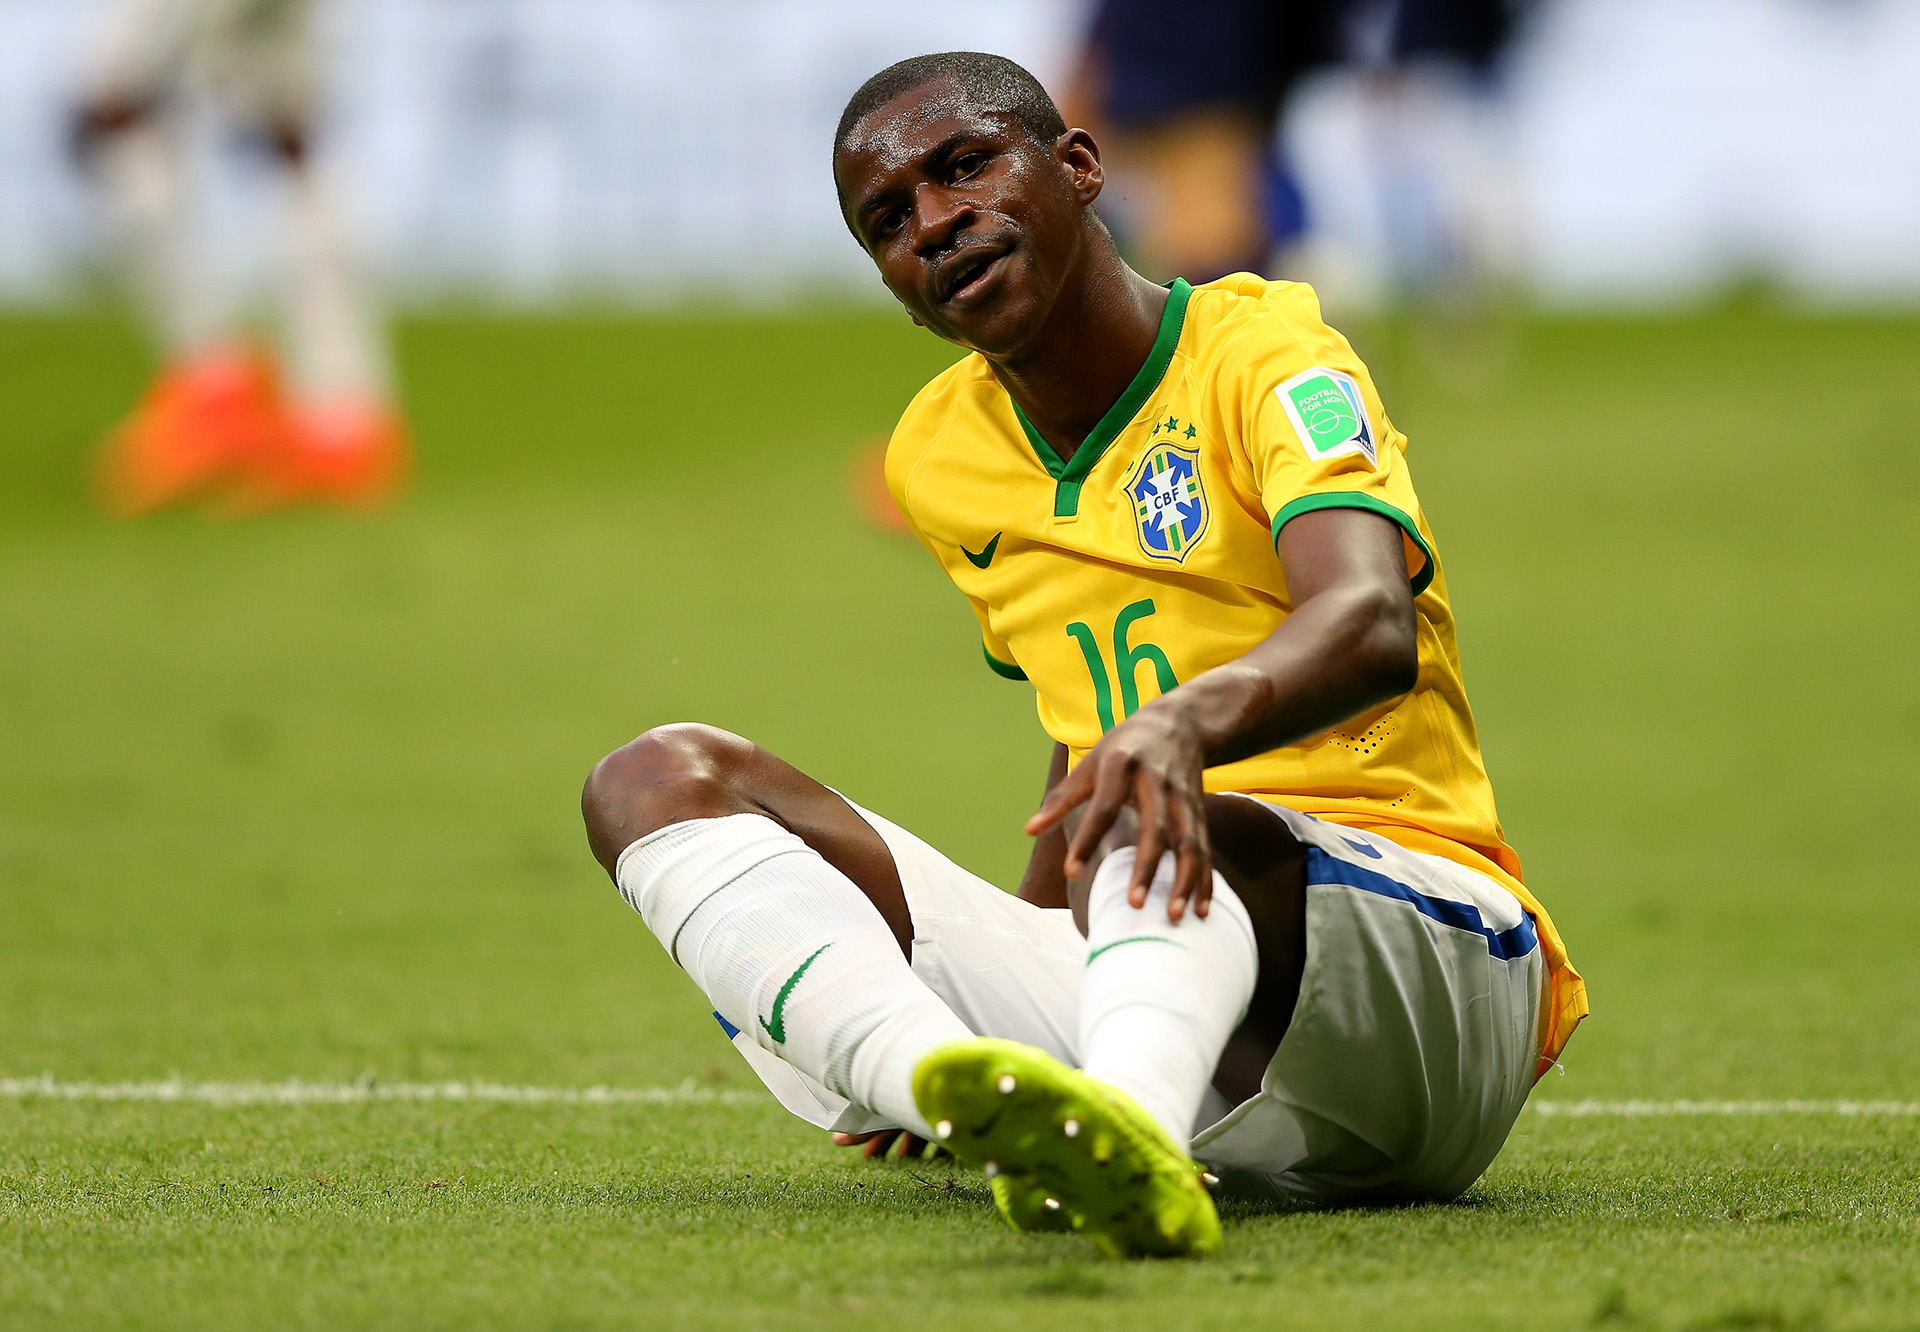 REVEALED Why Ramires left Chelsea for China